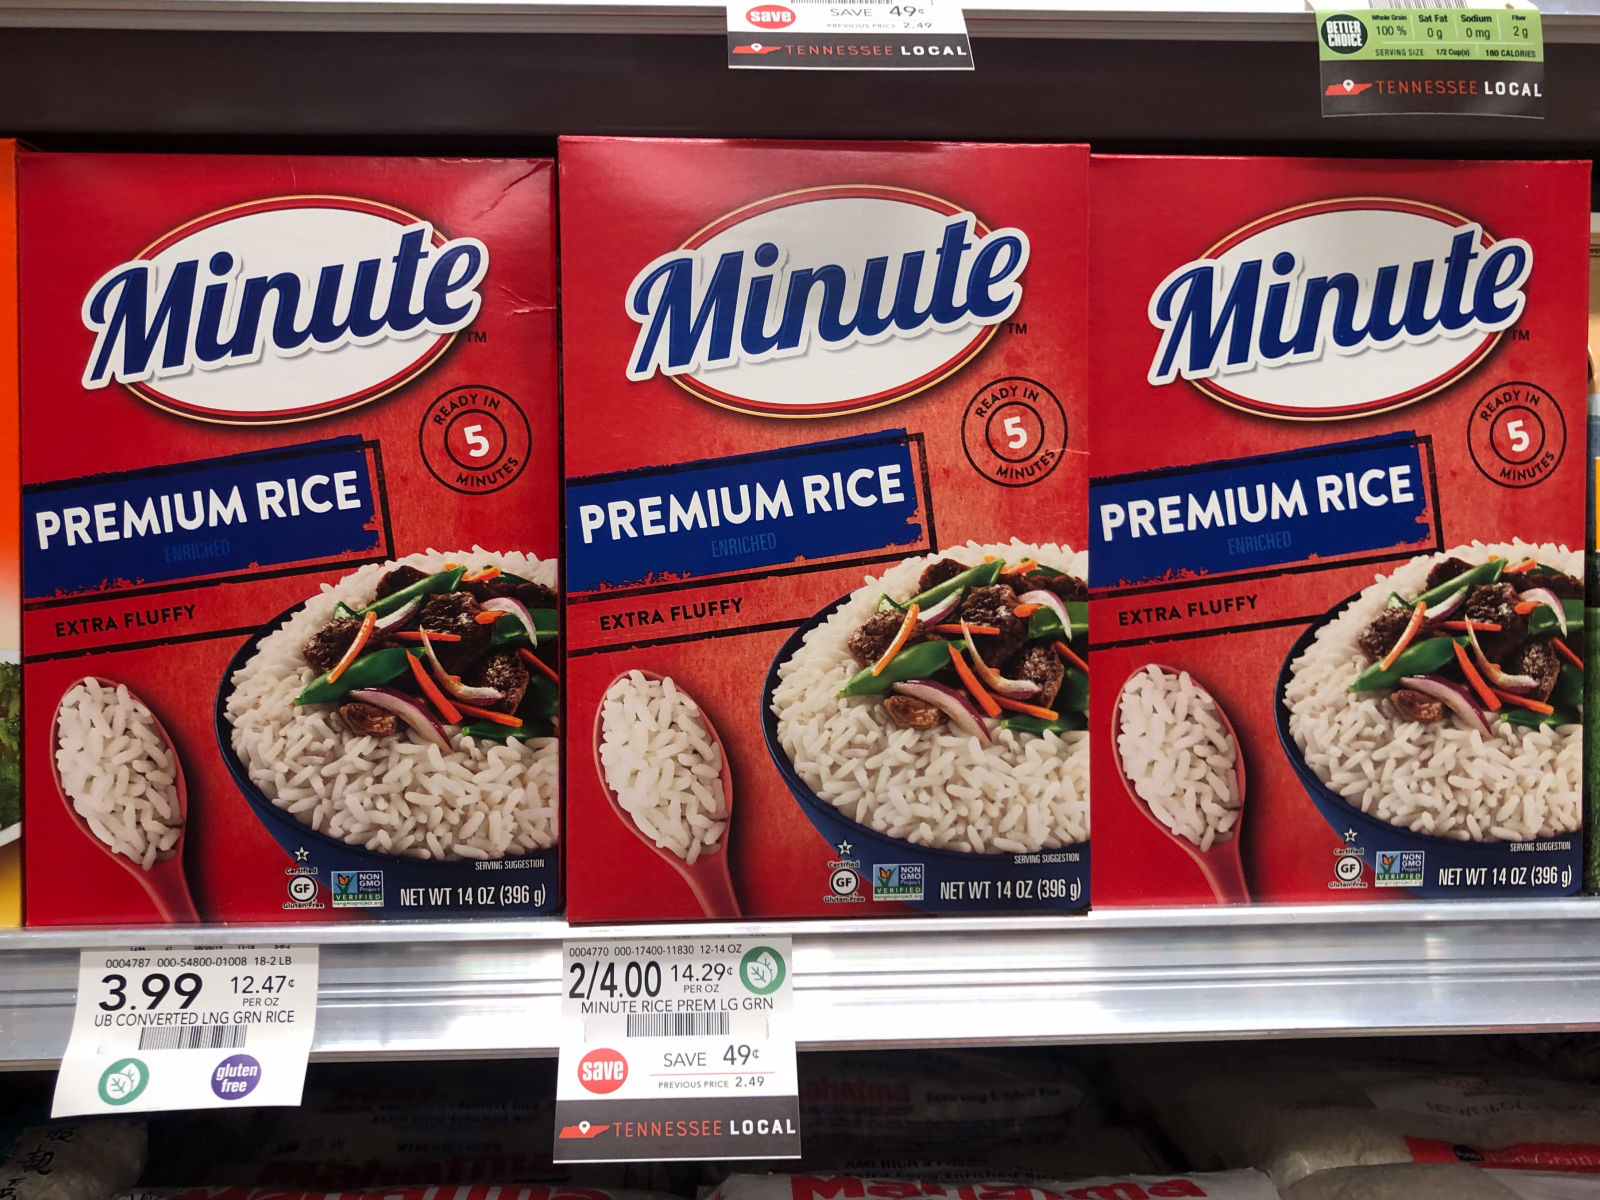 Quick & Easy Bulgogi For Your Busy Weeknight - Save On Minute Instant Rice Now At Publix on I Heart Publix 2